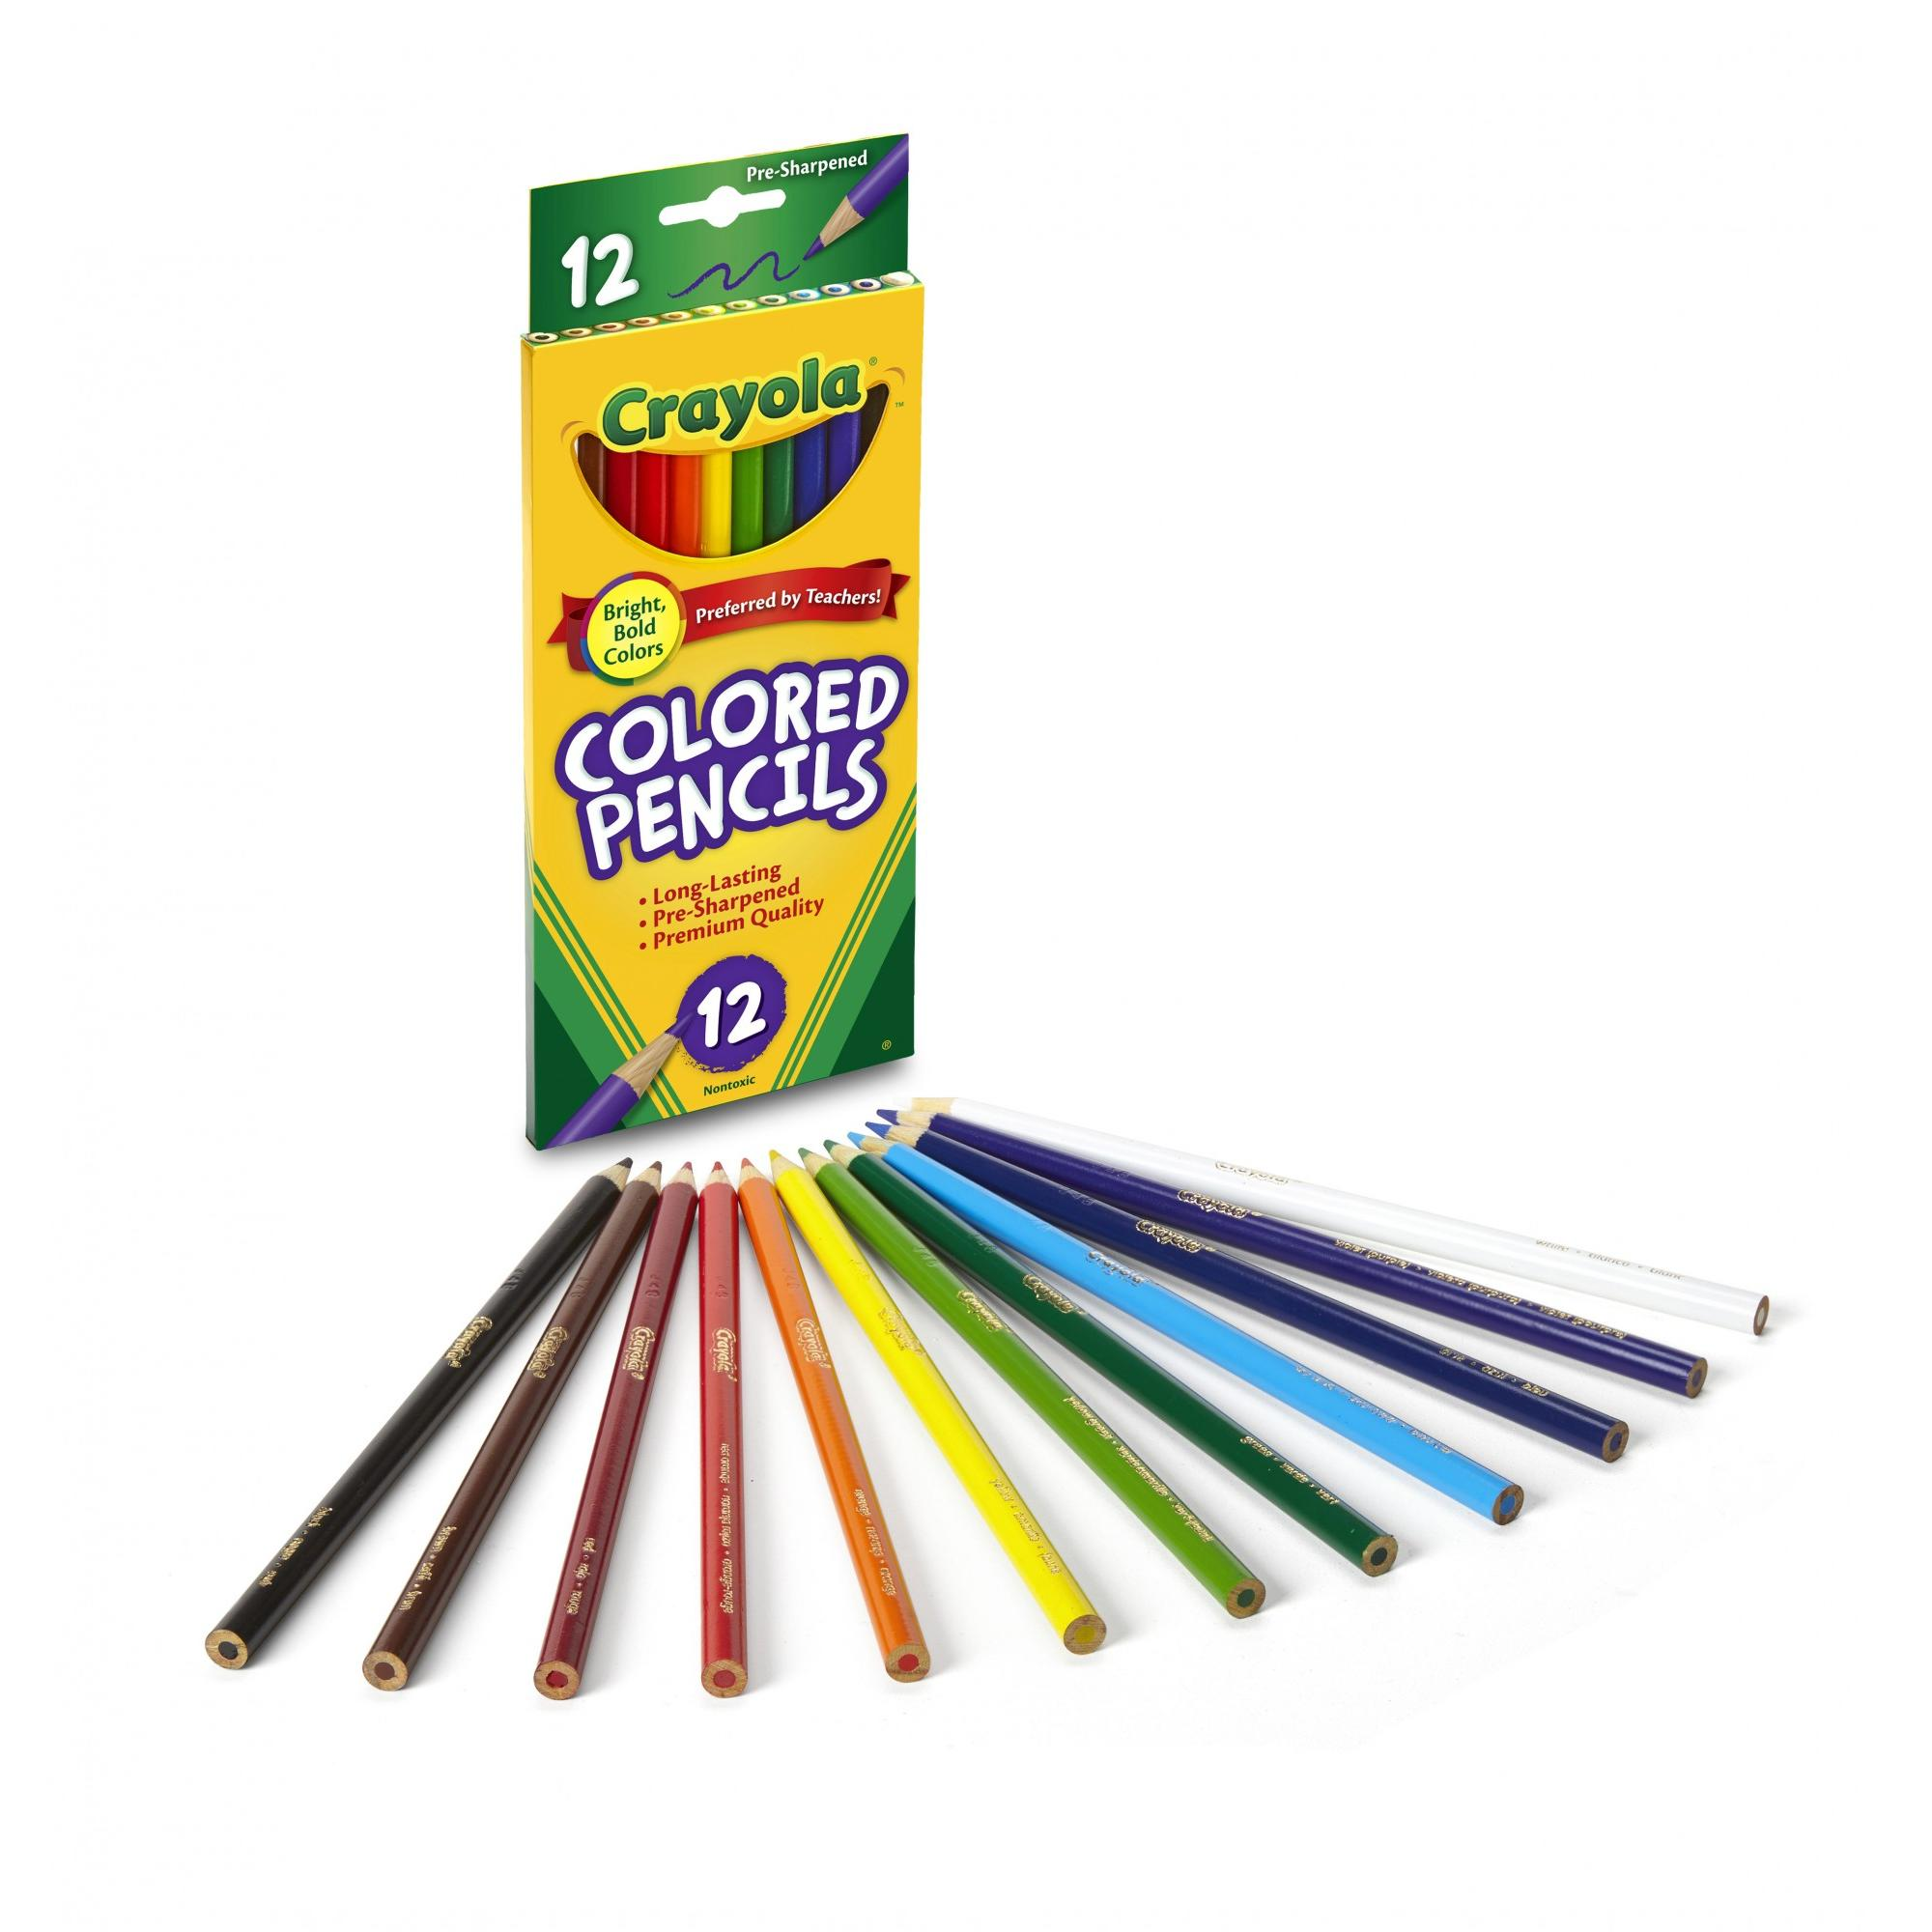 Crayola 12 Count Classic Colored Pencils by BINNEY & SMITH / CRAYOLA